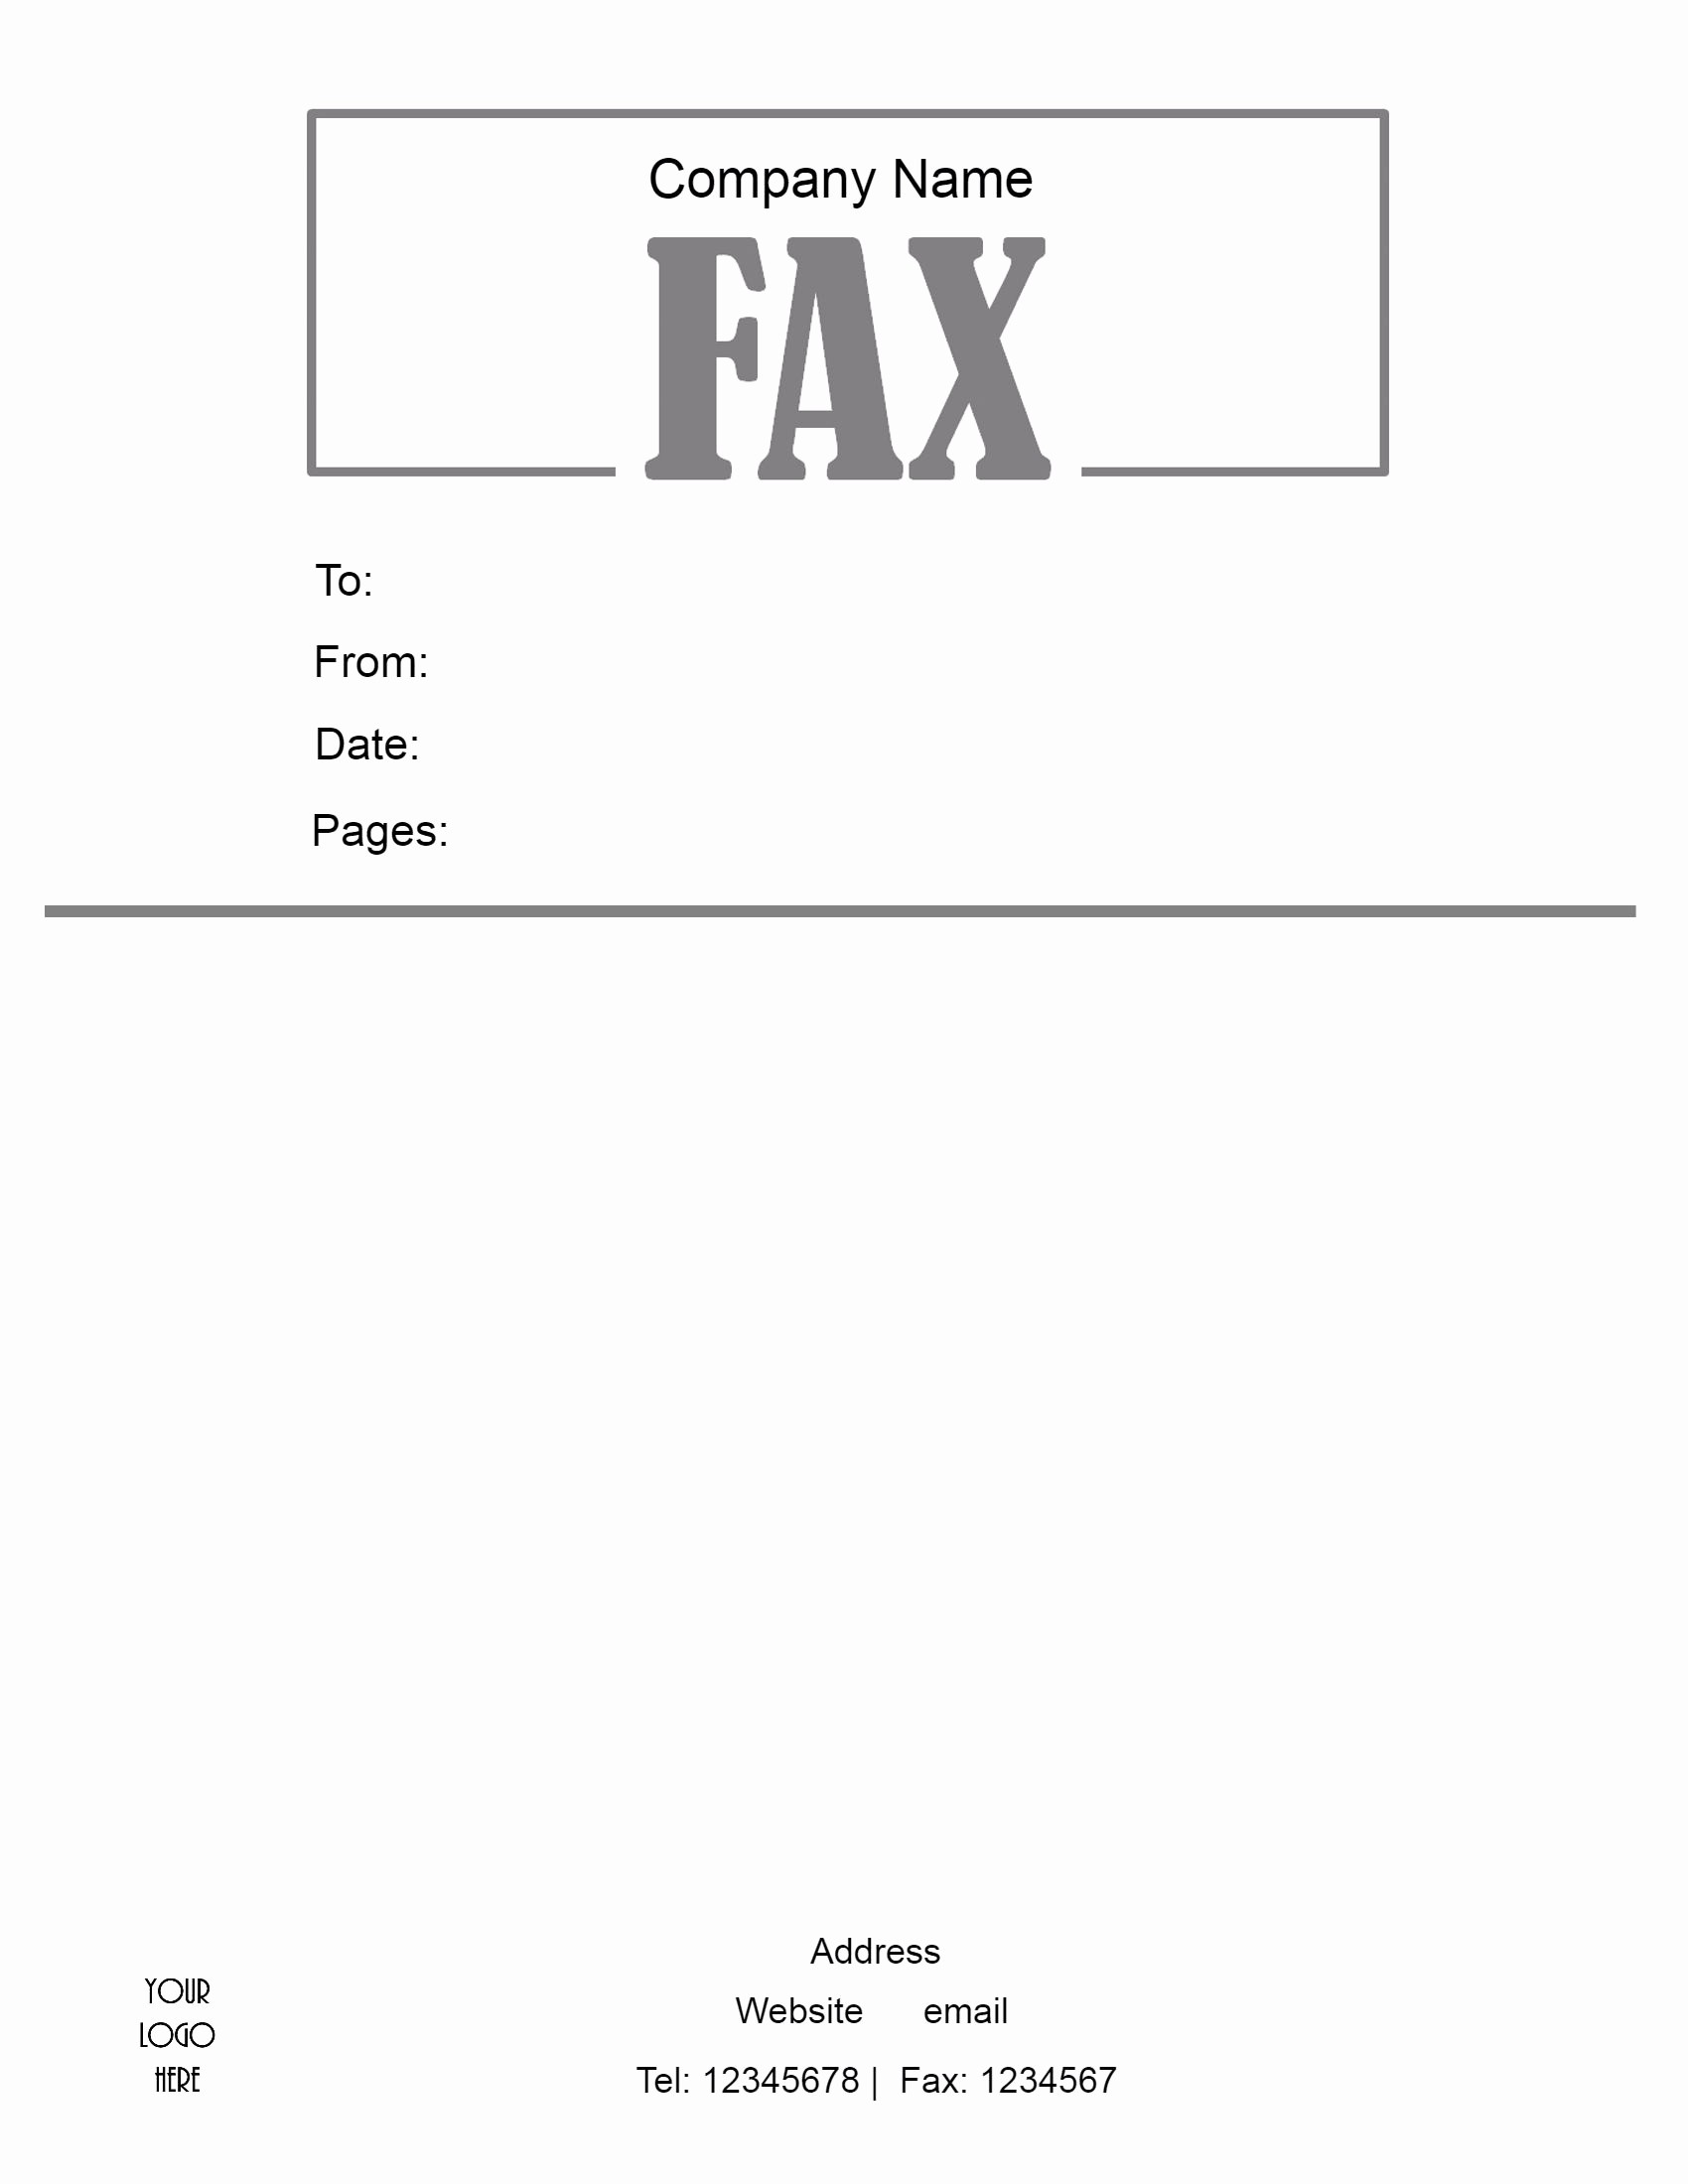 Printable Cover Sheet for Fax Beautiful Free Fax Cover Sheet Template format Example Pdf Printable